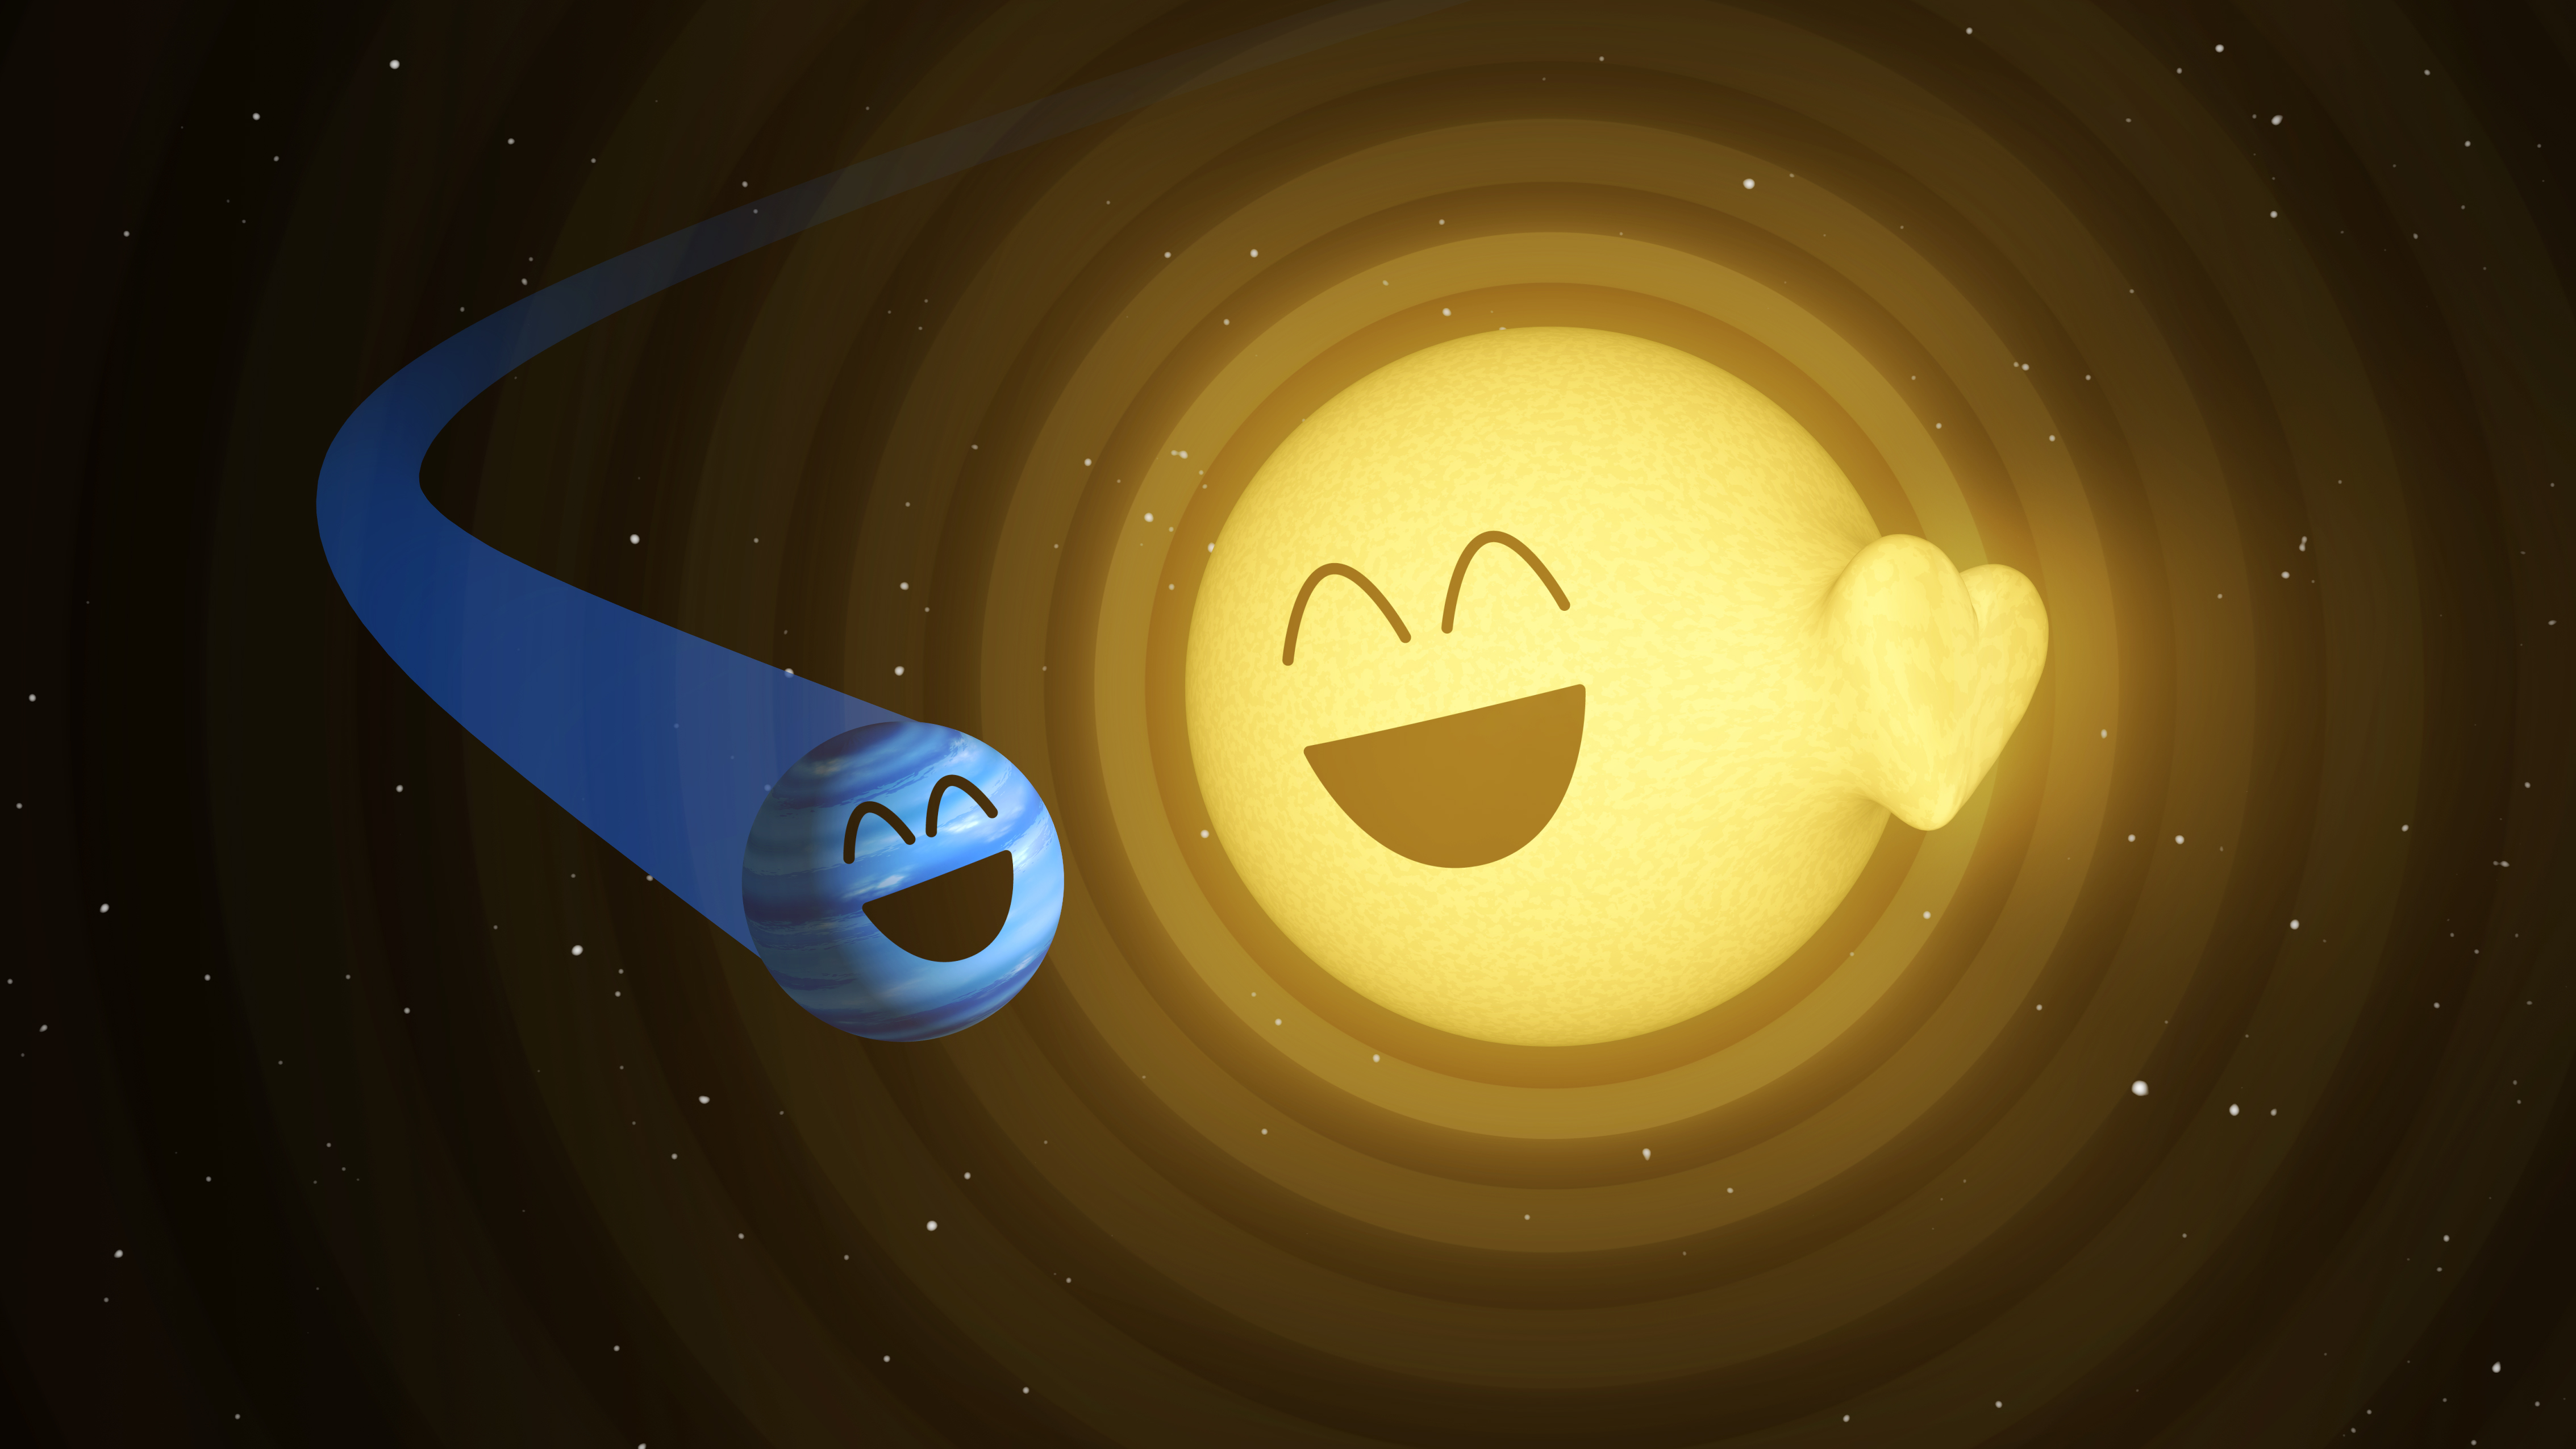 This Illustration Shows How The Planet Hatp2b, Left, Appears To